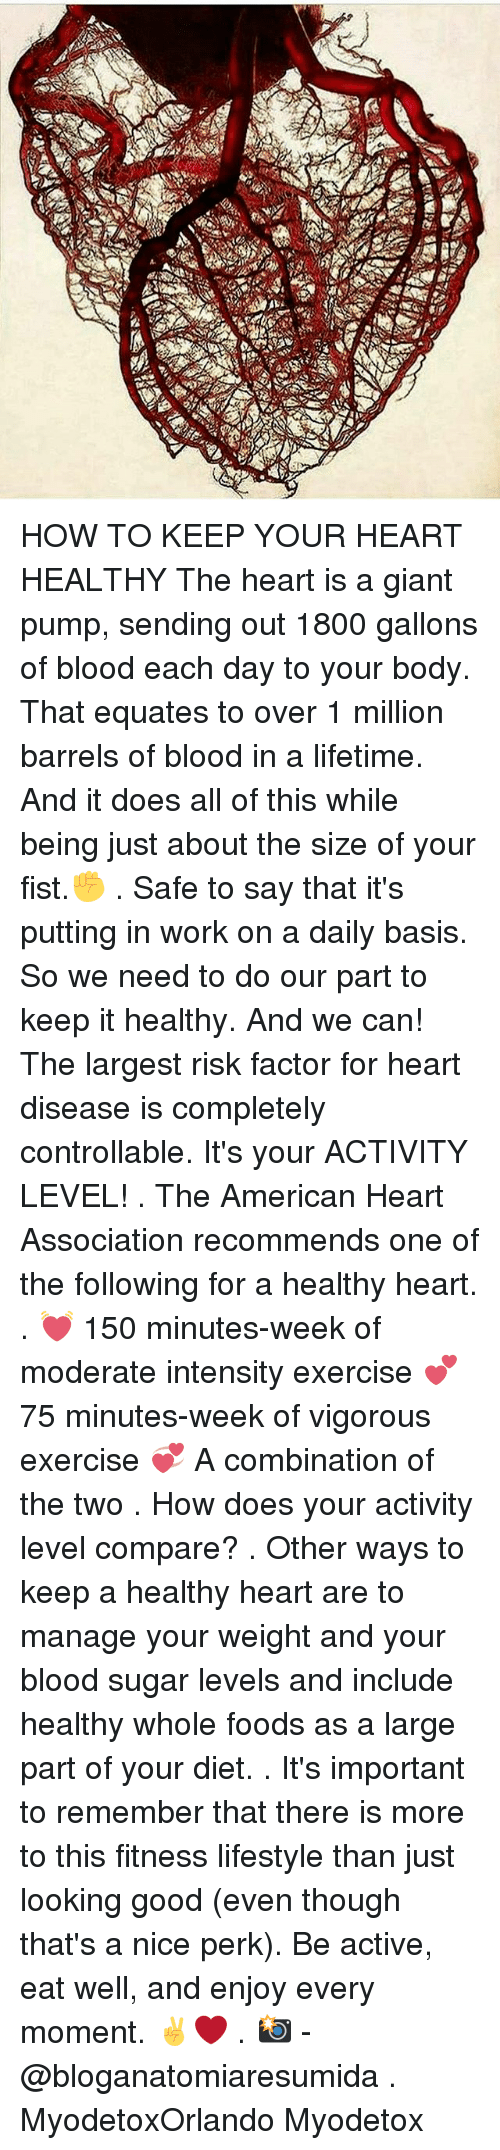 Memes, Whole Foods, and Work: traw: HOW TO KEEP YOUR HEART HEALTHY The heart is a giant pump, sending out 1800 gallons of blood each day to your body. That equates to over 1 million barrels of blood in a lifetime. And it does all of this while being just about the size of your fist.✊ . Safe to say that it's putting in work on a daily basis. So we need to do our part to keep it healthy. And we can! The largest risk factor for heart disease is completely controllable. It's your ACTIVITY LEVEL! . The American Heart Association recommends one of the following for a healthy heart. . 💓 150 minutes-week of moderate intensity exercise 💕 75 minutes-week of vigorous exercise 💞 A combination of the two . How does your activity level compare? . Other ways to keep a healthy heart are to manage your weight and your blood sugar levels and include healthy whole foods as a large part of your diet. . It's important to remember that there is more to this fitness lifestyle than just looking good (even though that's a nice perk). Be active, eat well, and enjoy every moment. ✌❤ . 📸 - @bloganatomiaresumida . MyodetoxOrlando Myodetox